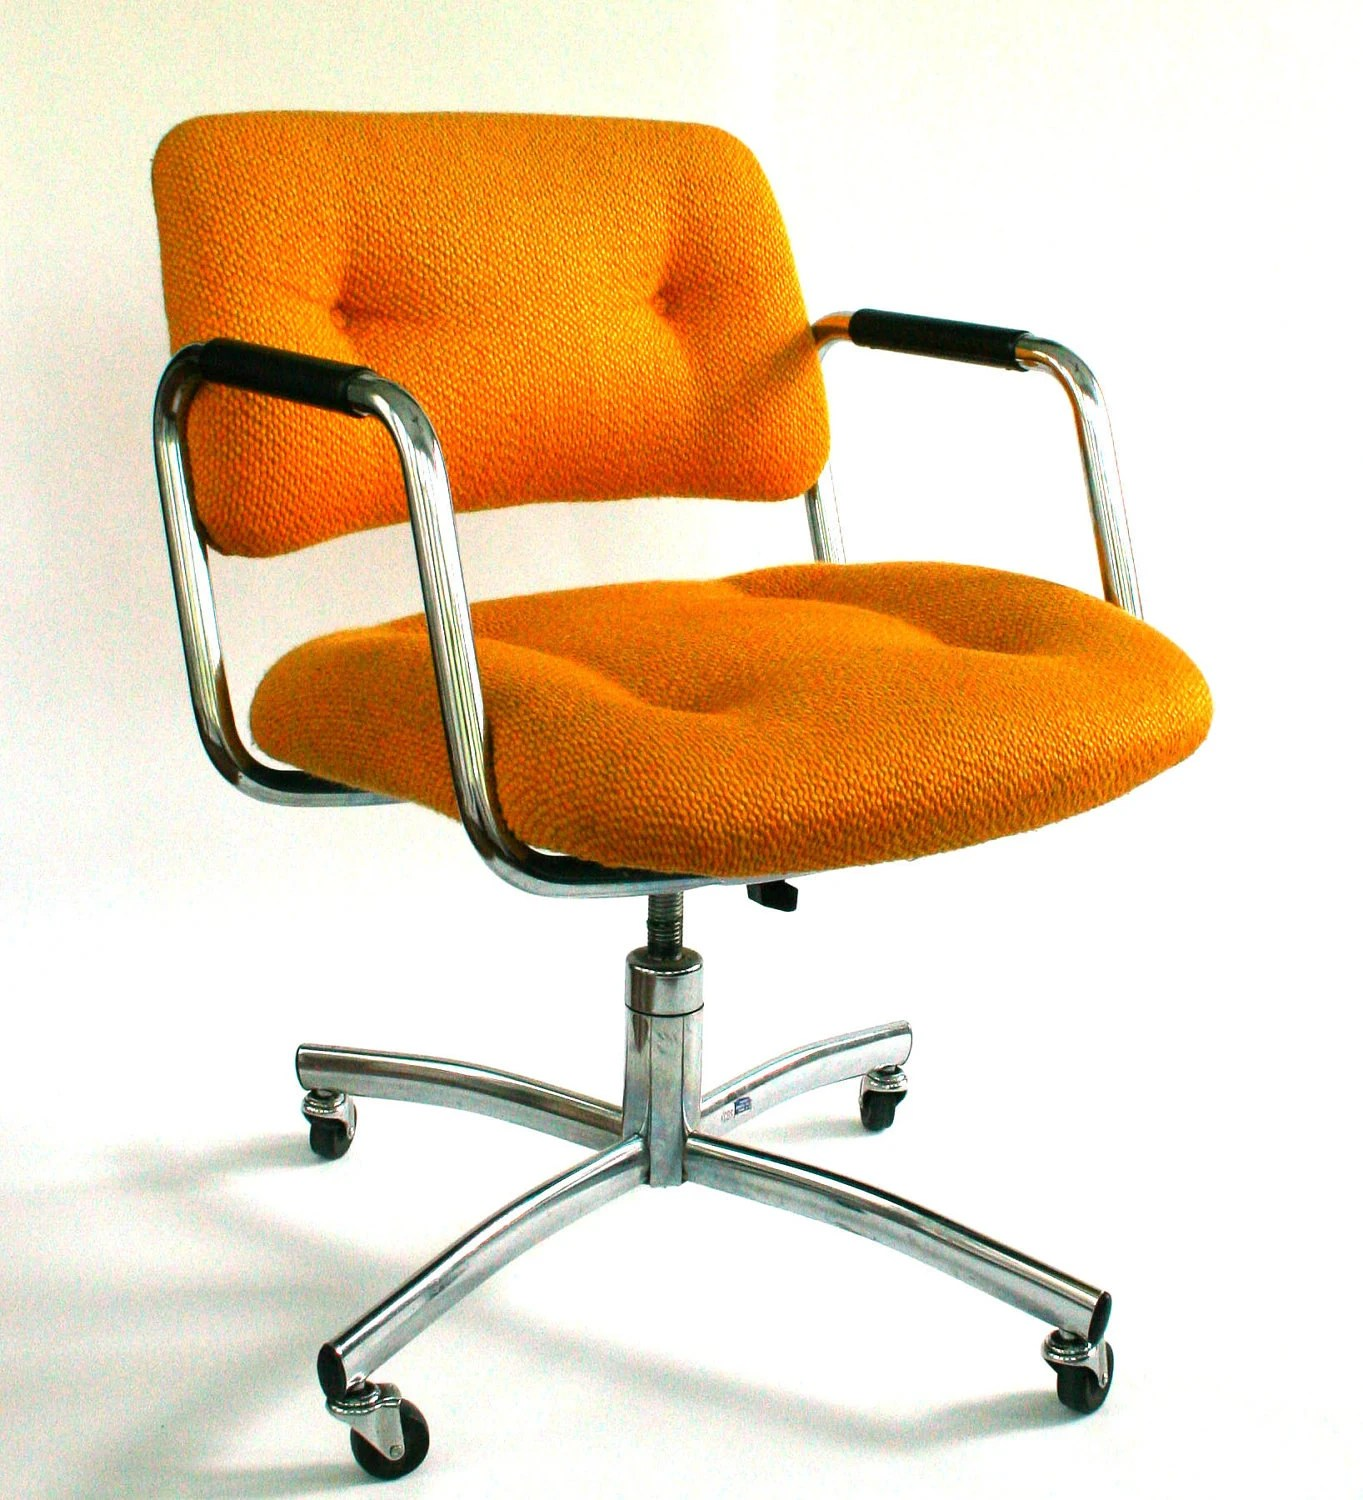 steelcase vintage chair conference table chairs with casters office desk mid century upholstered mustard